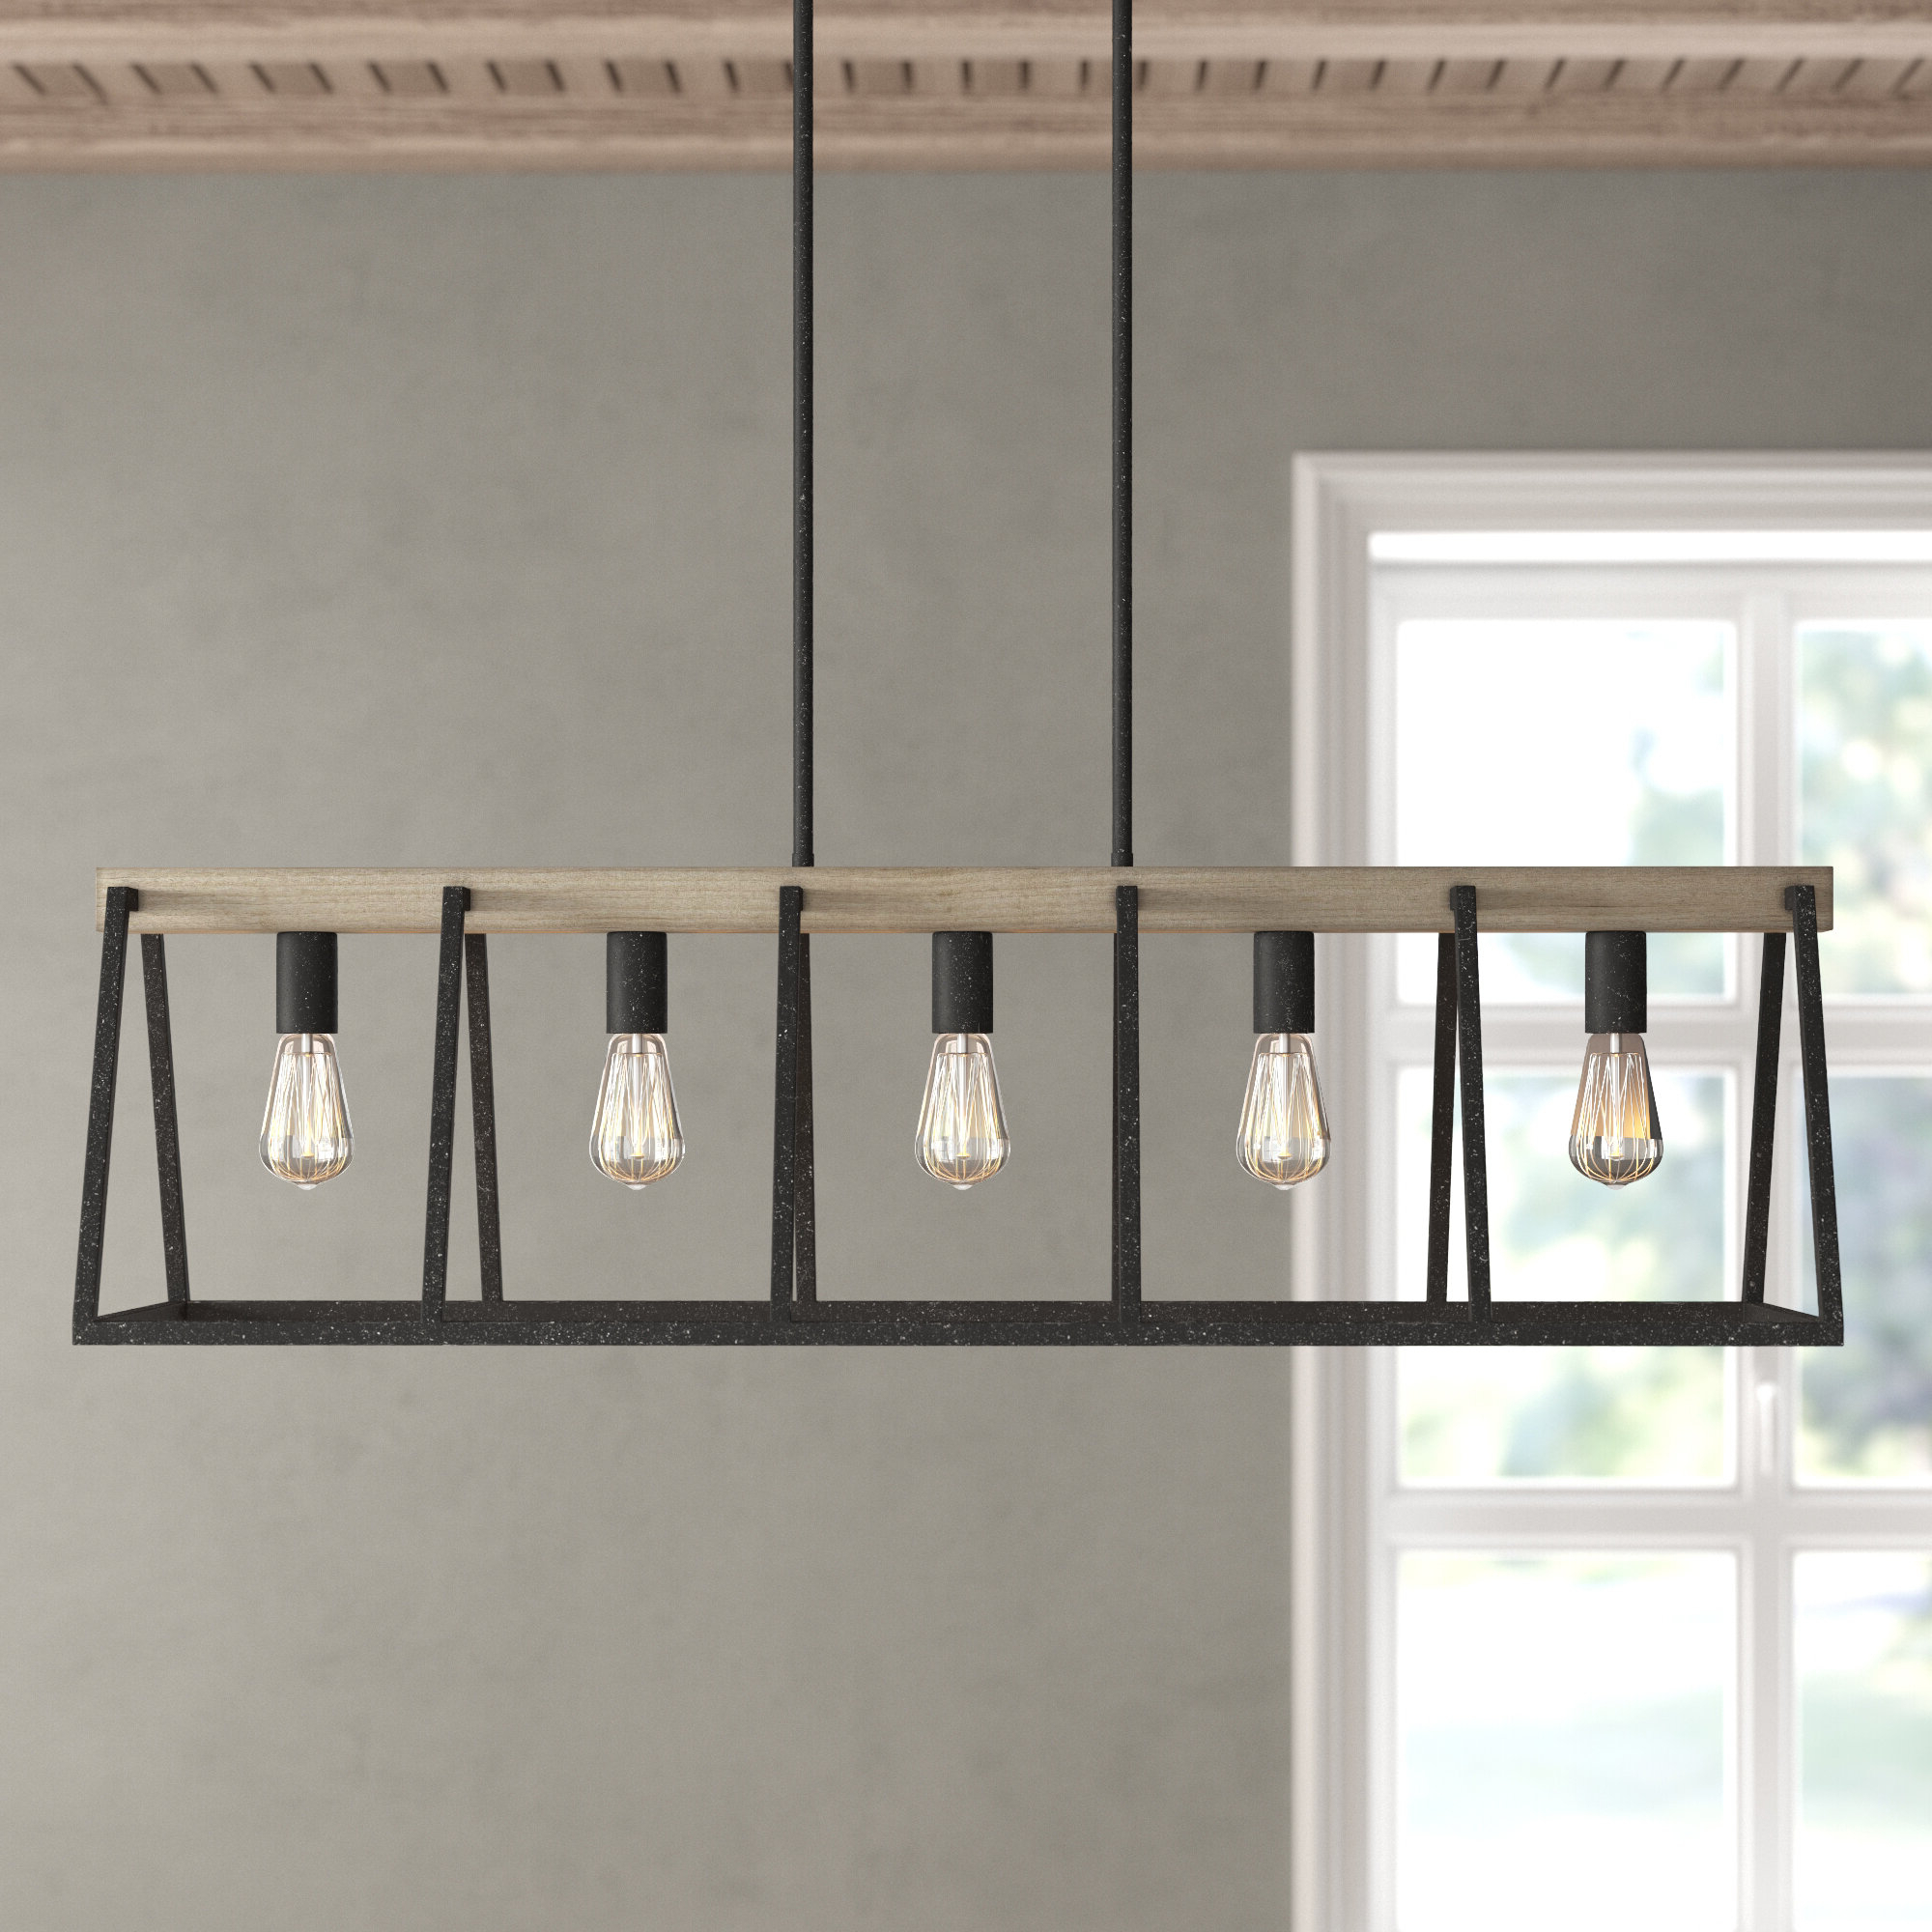 Dillman 5 Light Kitchen Island Linear Pendant In Most Recently Released Freemont 5 Light Kitchen Island Linear Chandeliers (View 1 of 20)